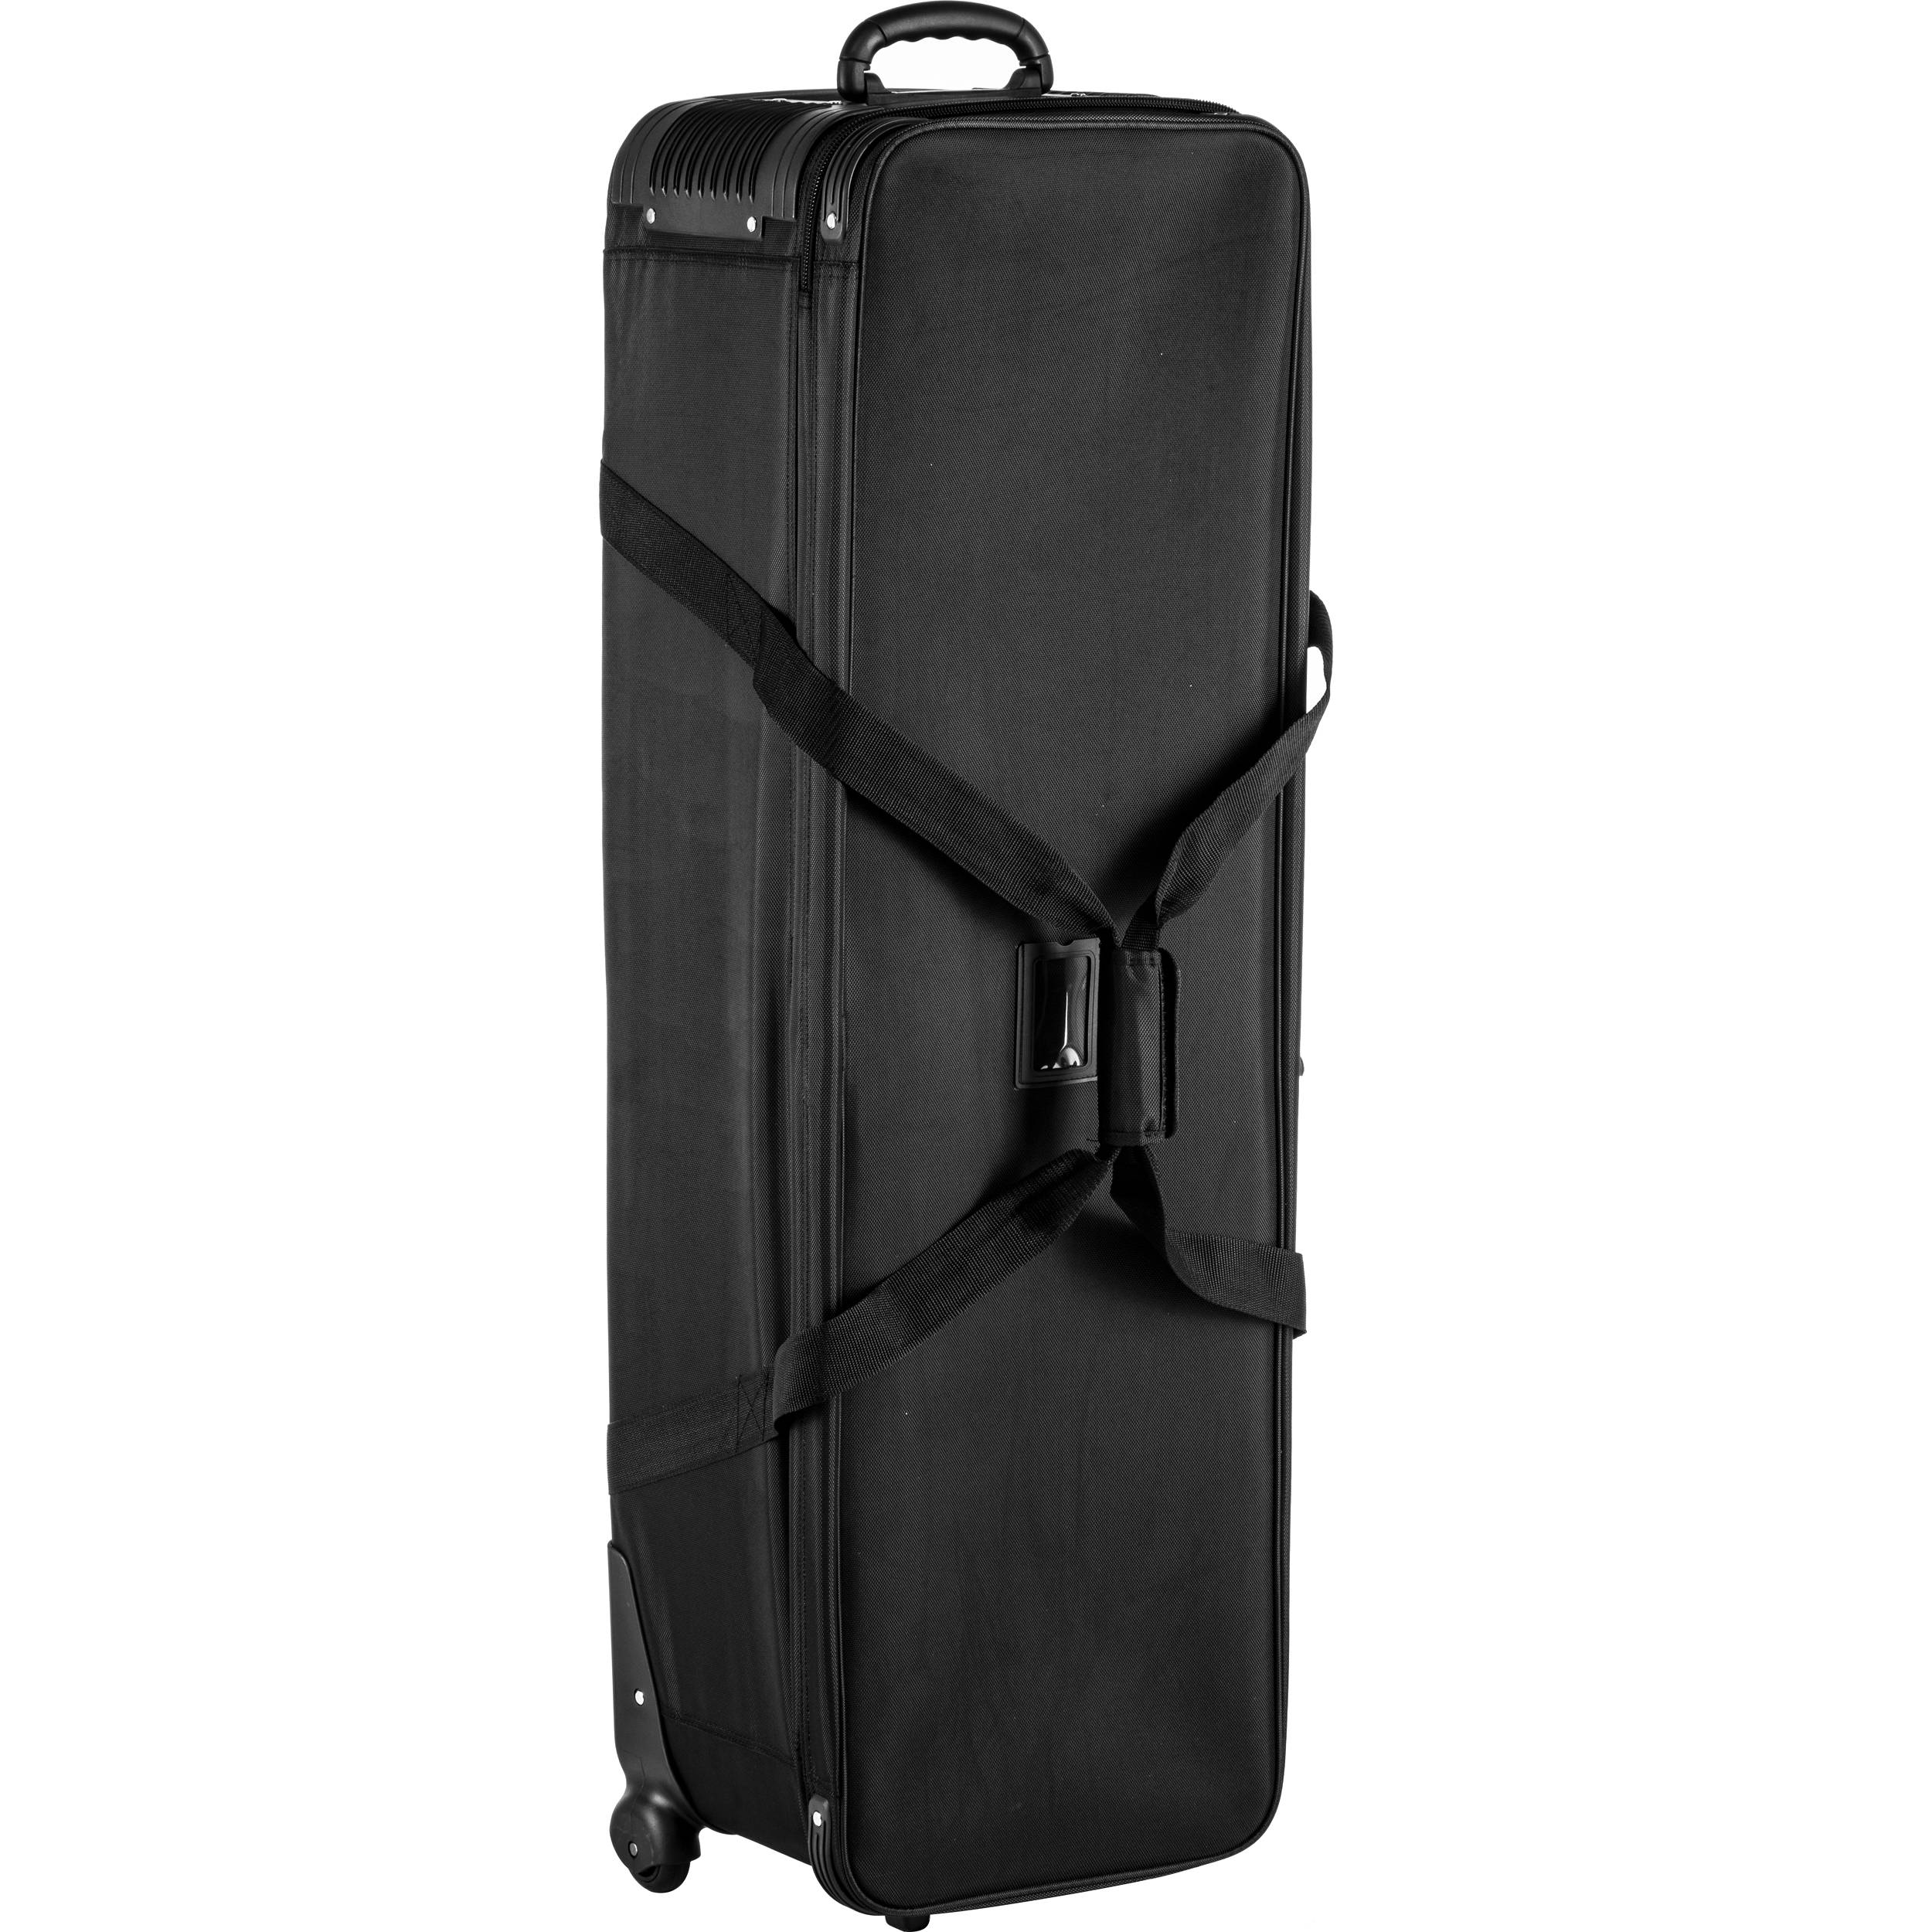 Ox Cb 01 Wheeled Light Stand And Tripod Carrying Bag Black 44 9